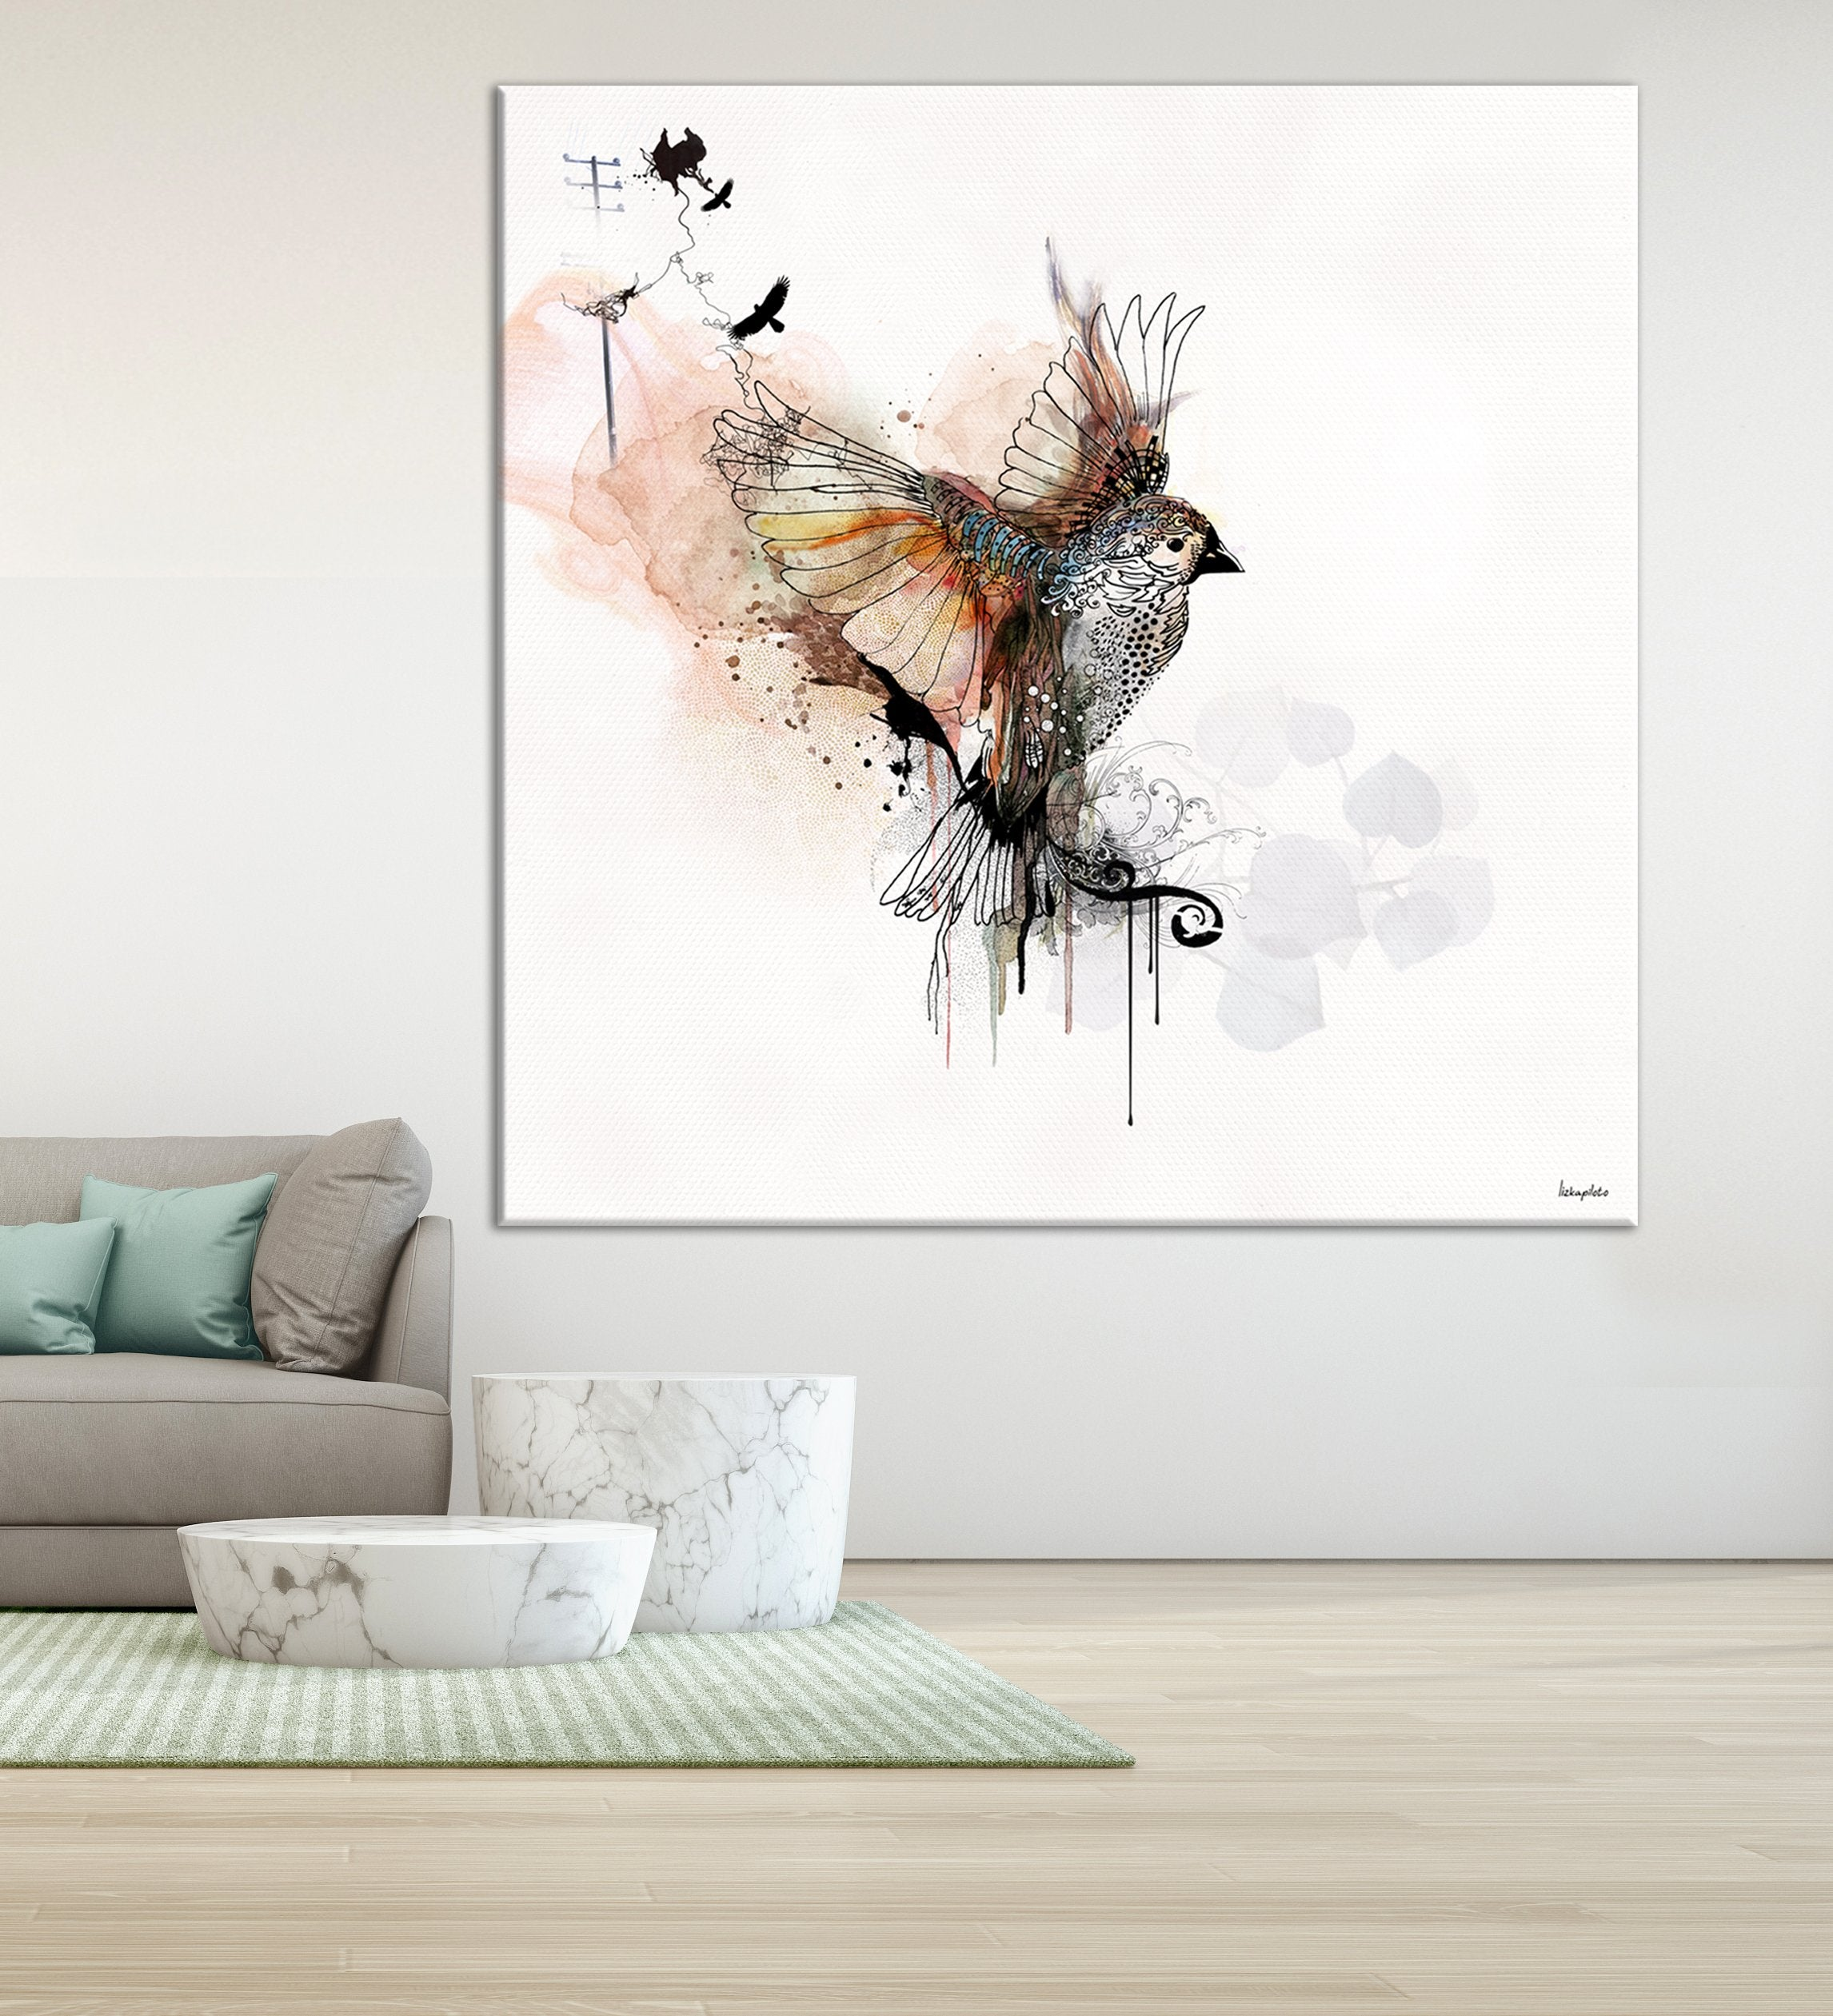 large canvas art of watercolor bird painting on the wall